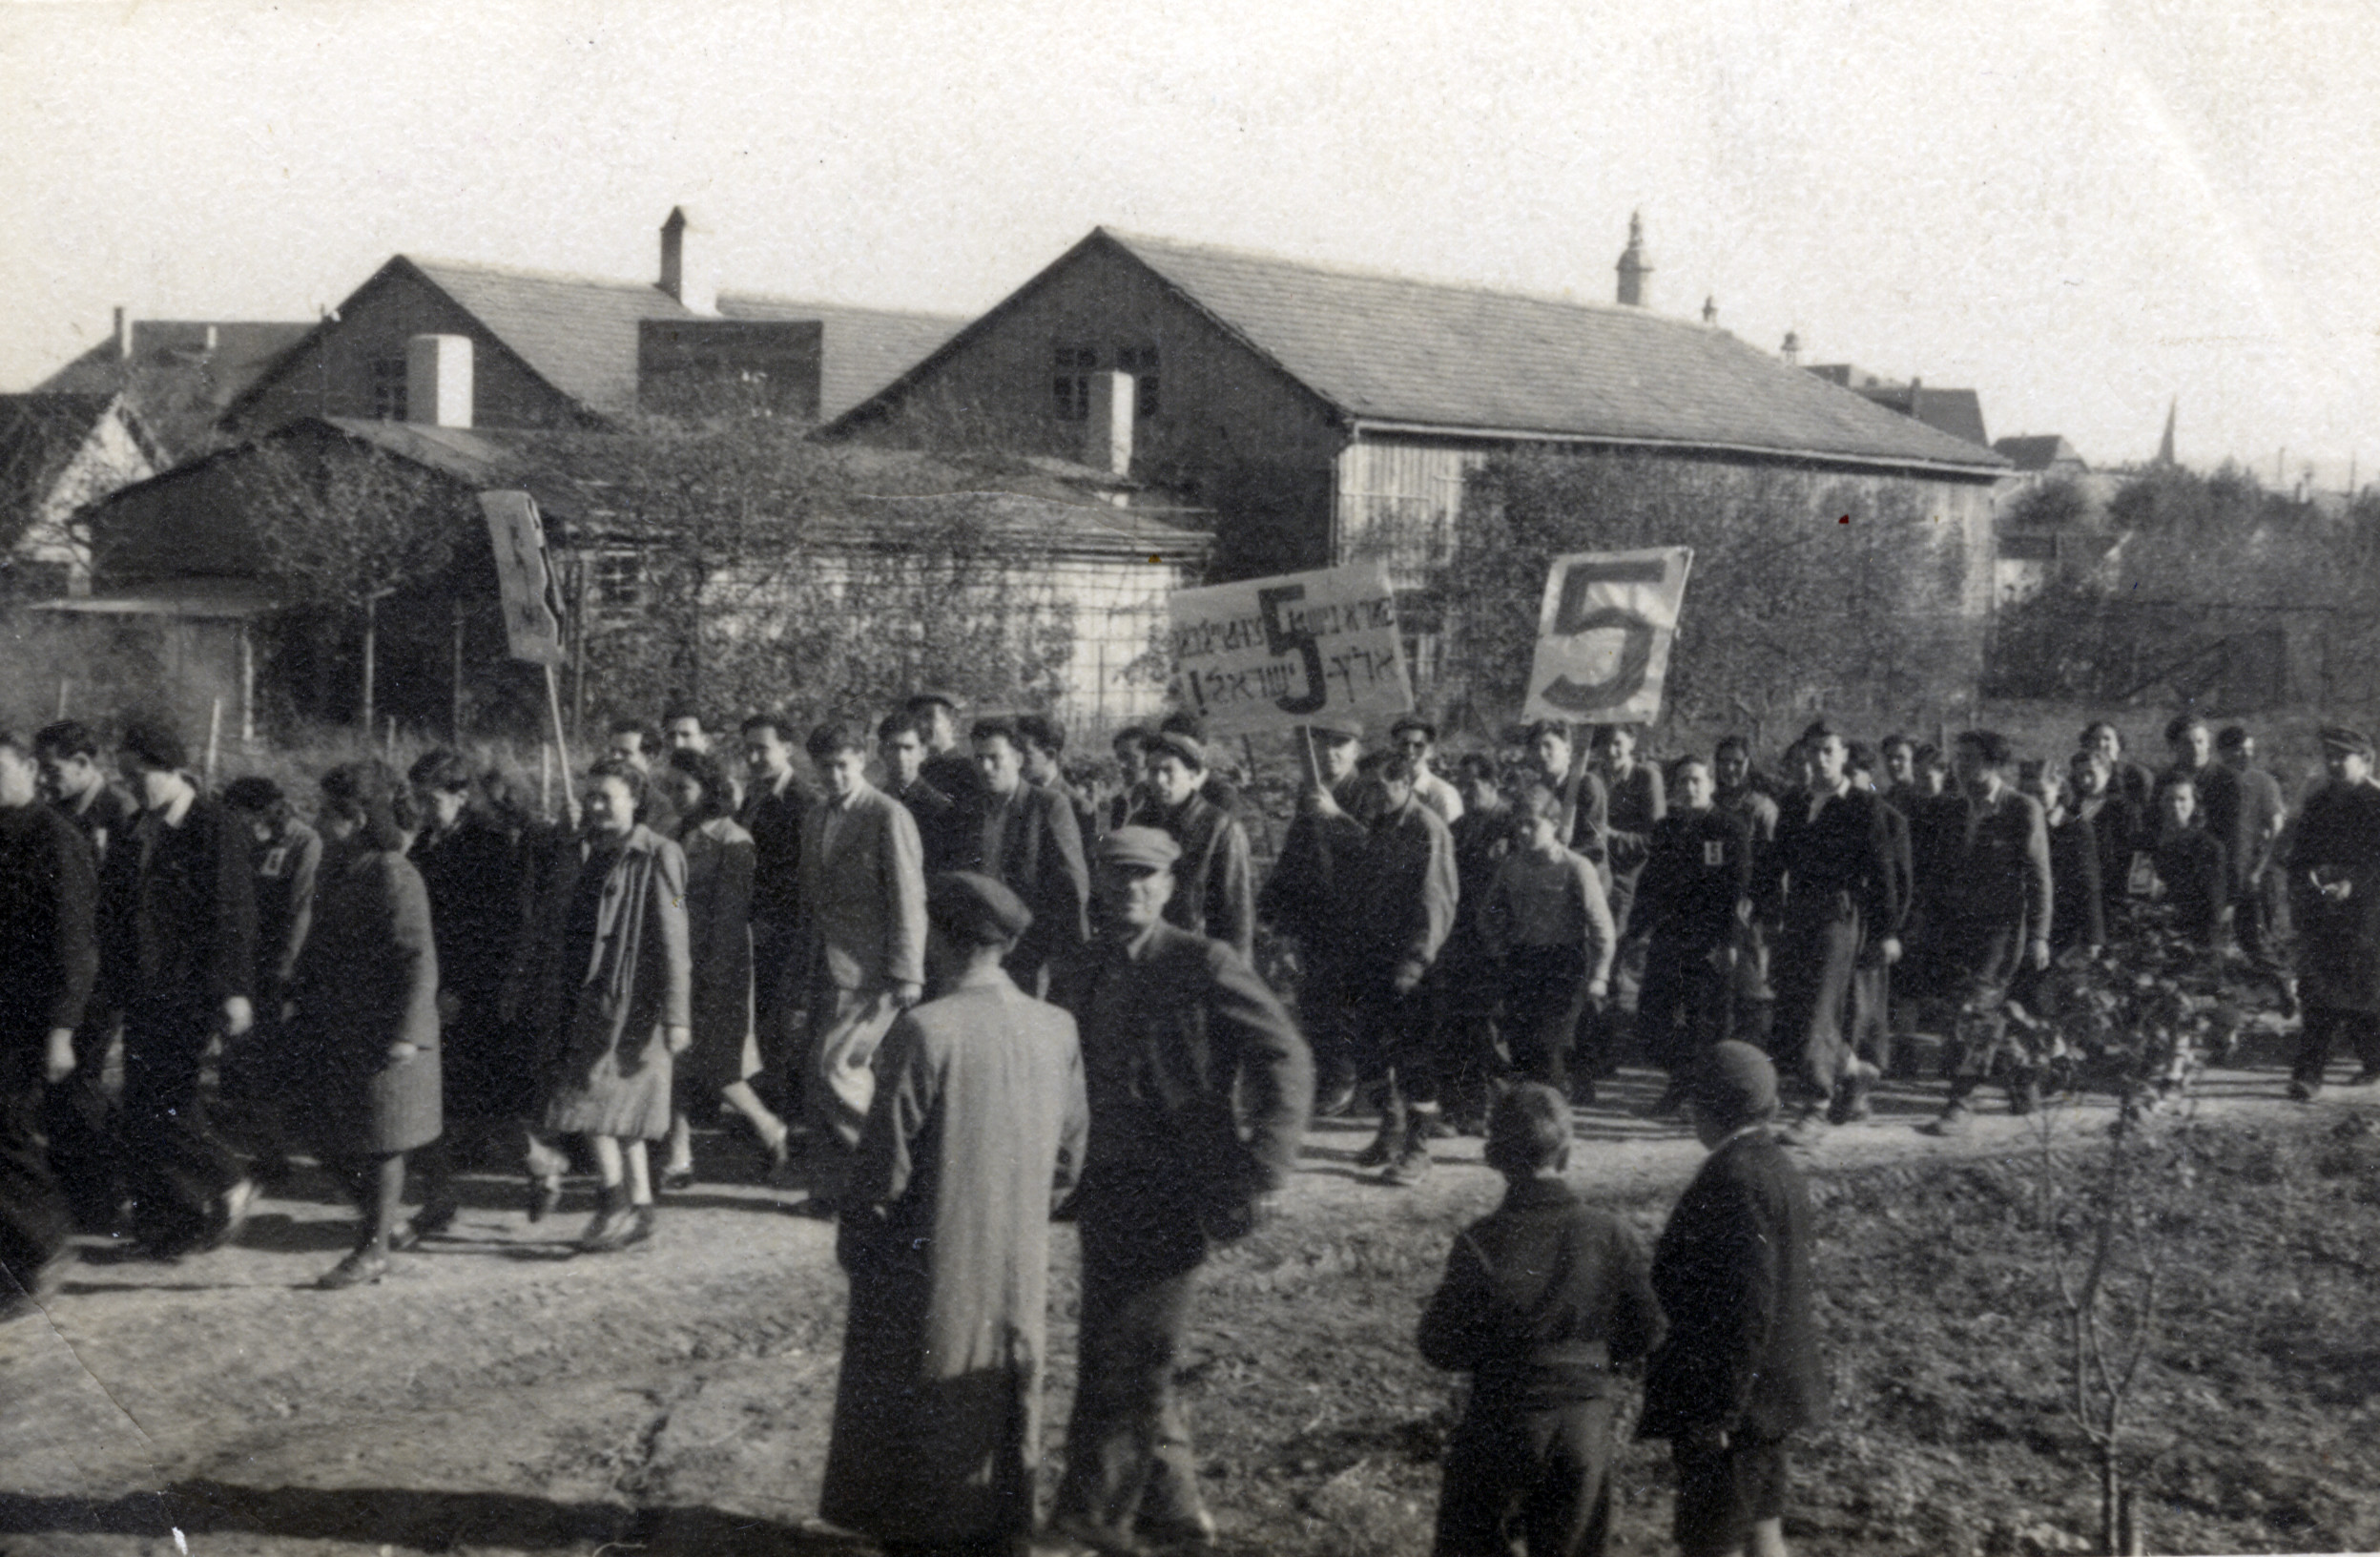 Jewish detainees on the island of Cyprus march in protest of British policies restricting their immigration to Palestine.